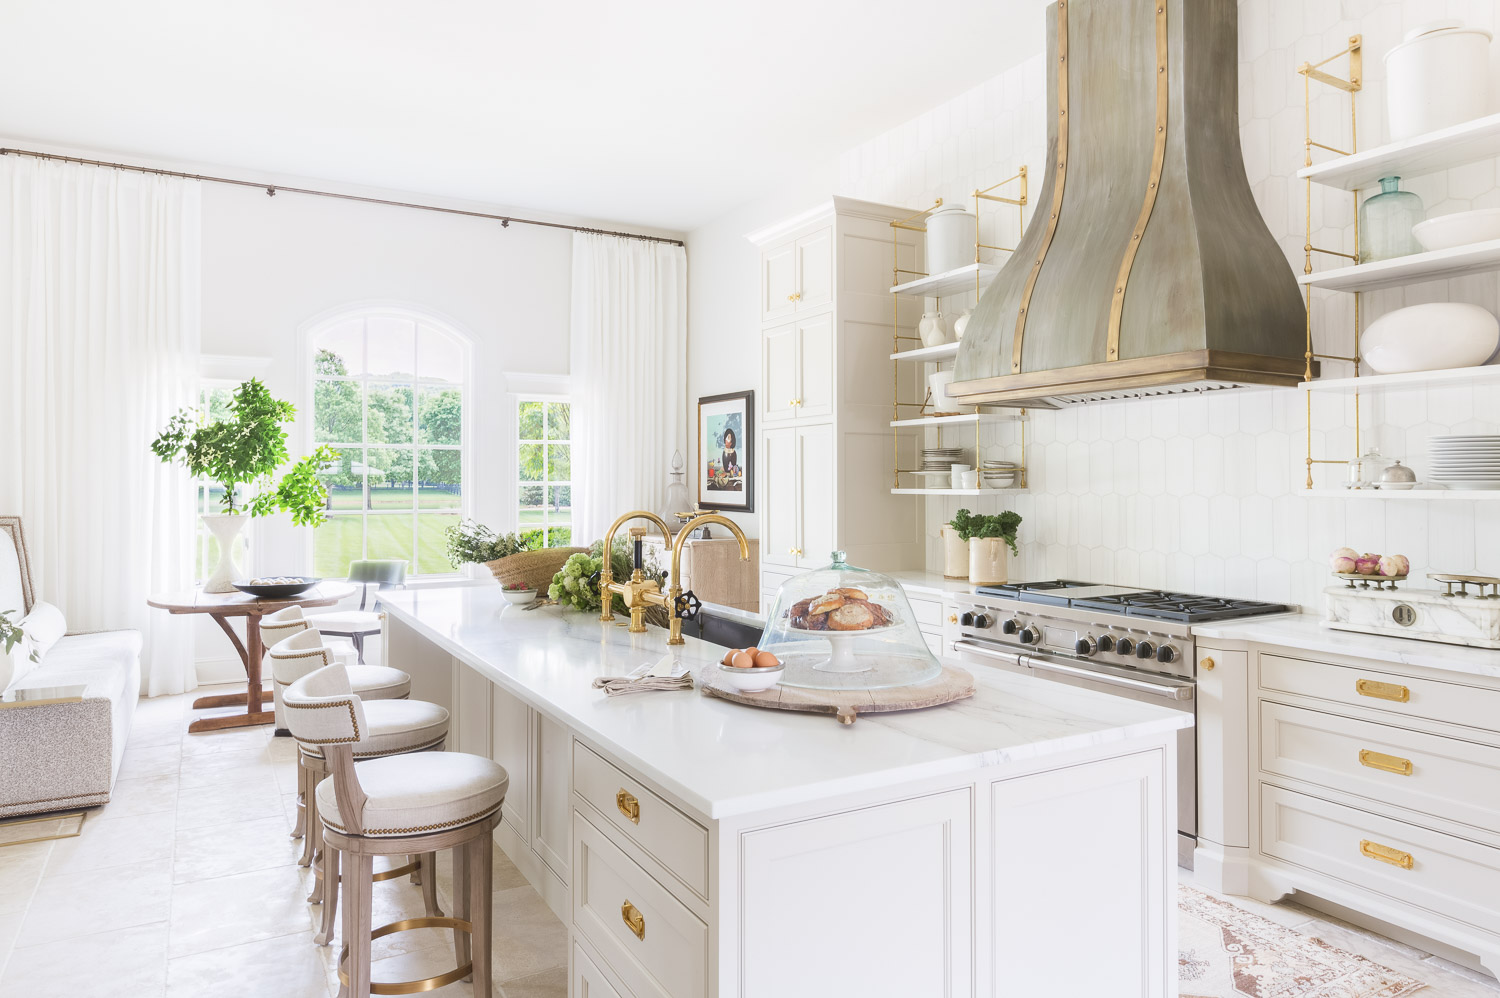 White kitchen space with neutral accent tones and gold metal elements